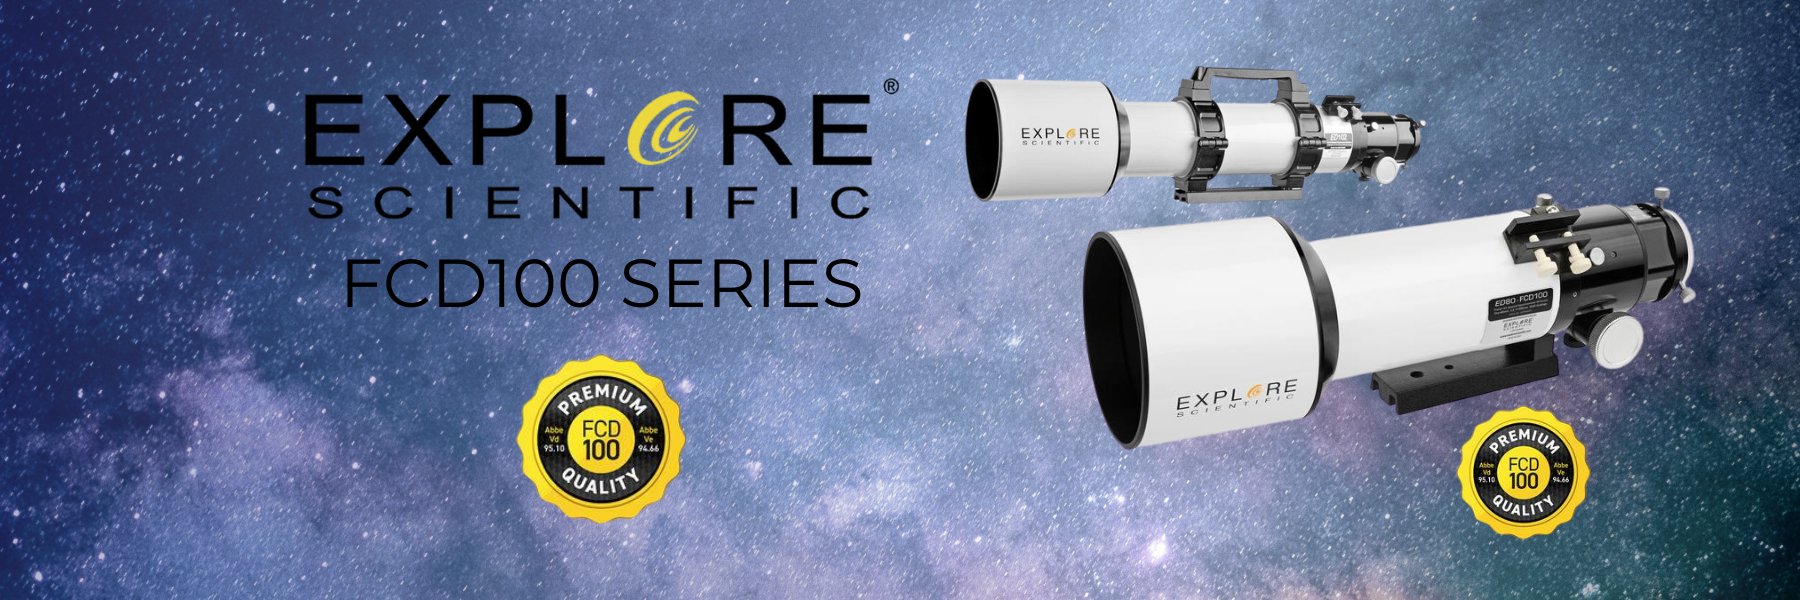 FCD100 Series. A Collection of High Quality Extra-Low Dispersion (ED) Apochromatic (APO) Refractors from Explore Scientific